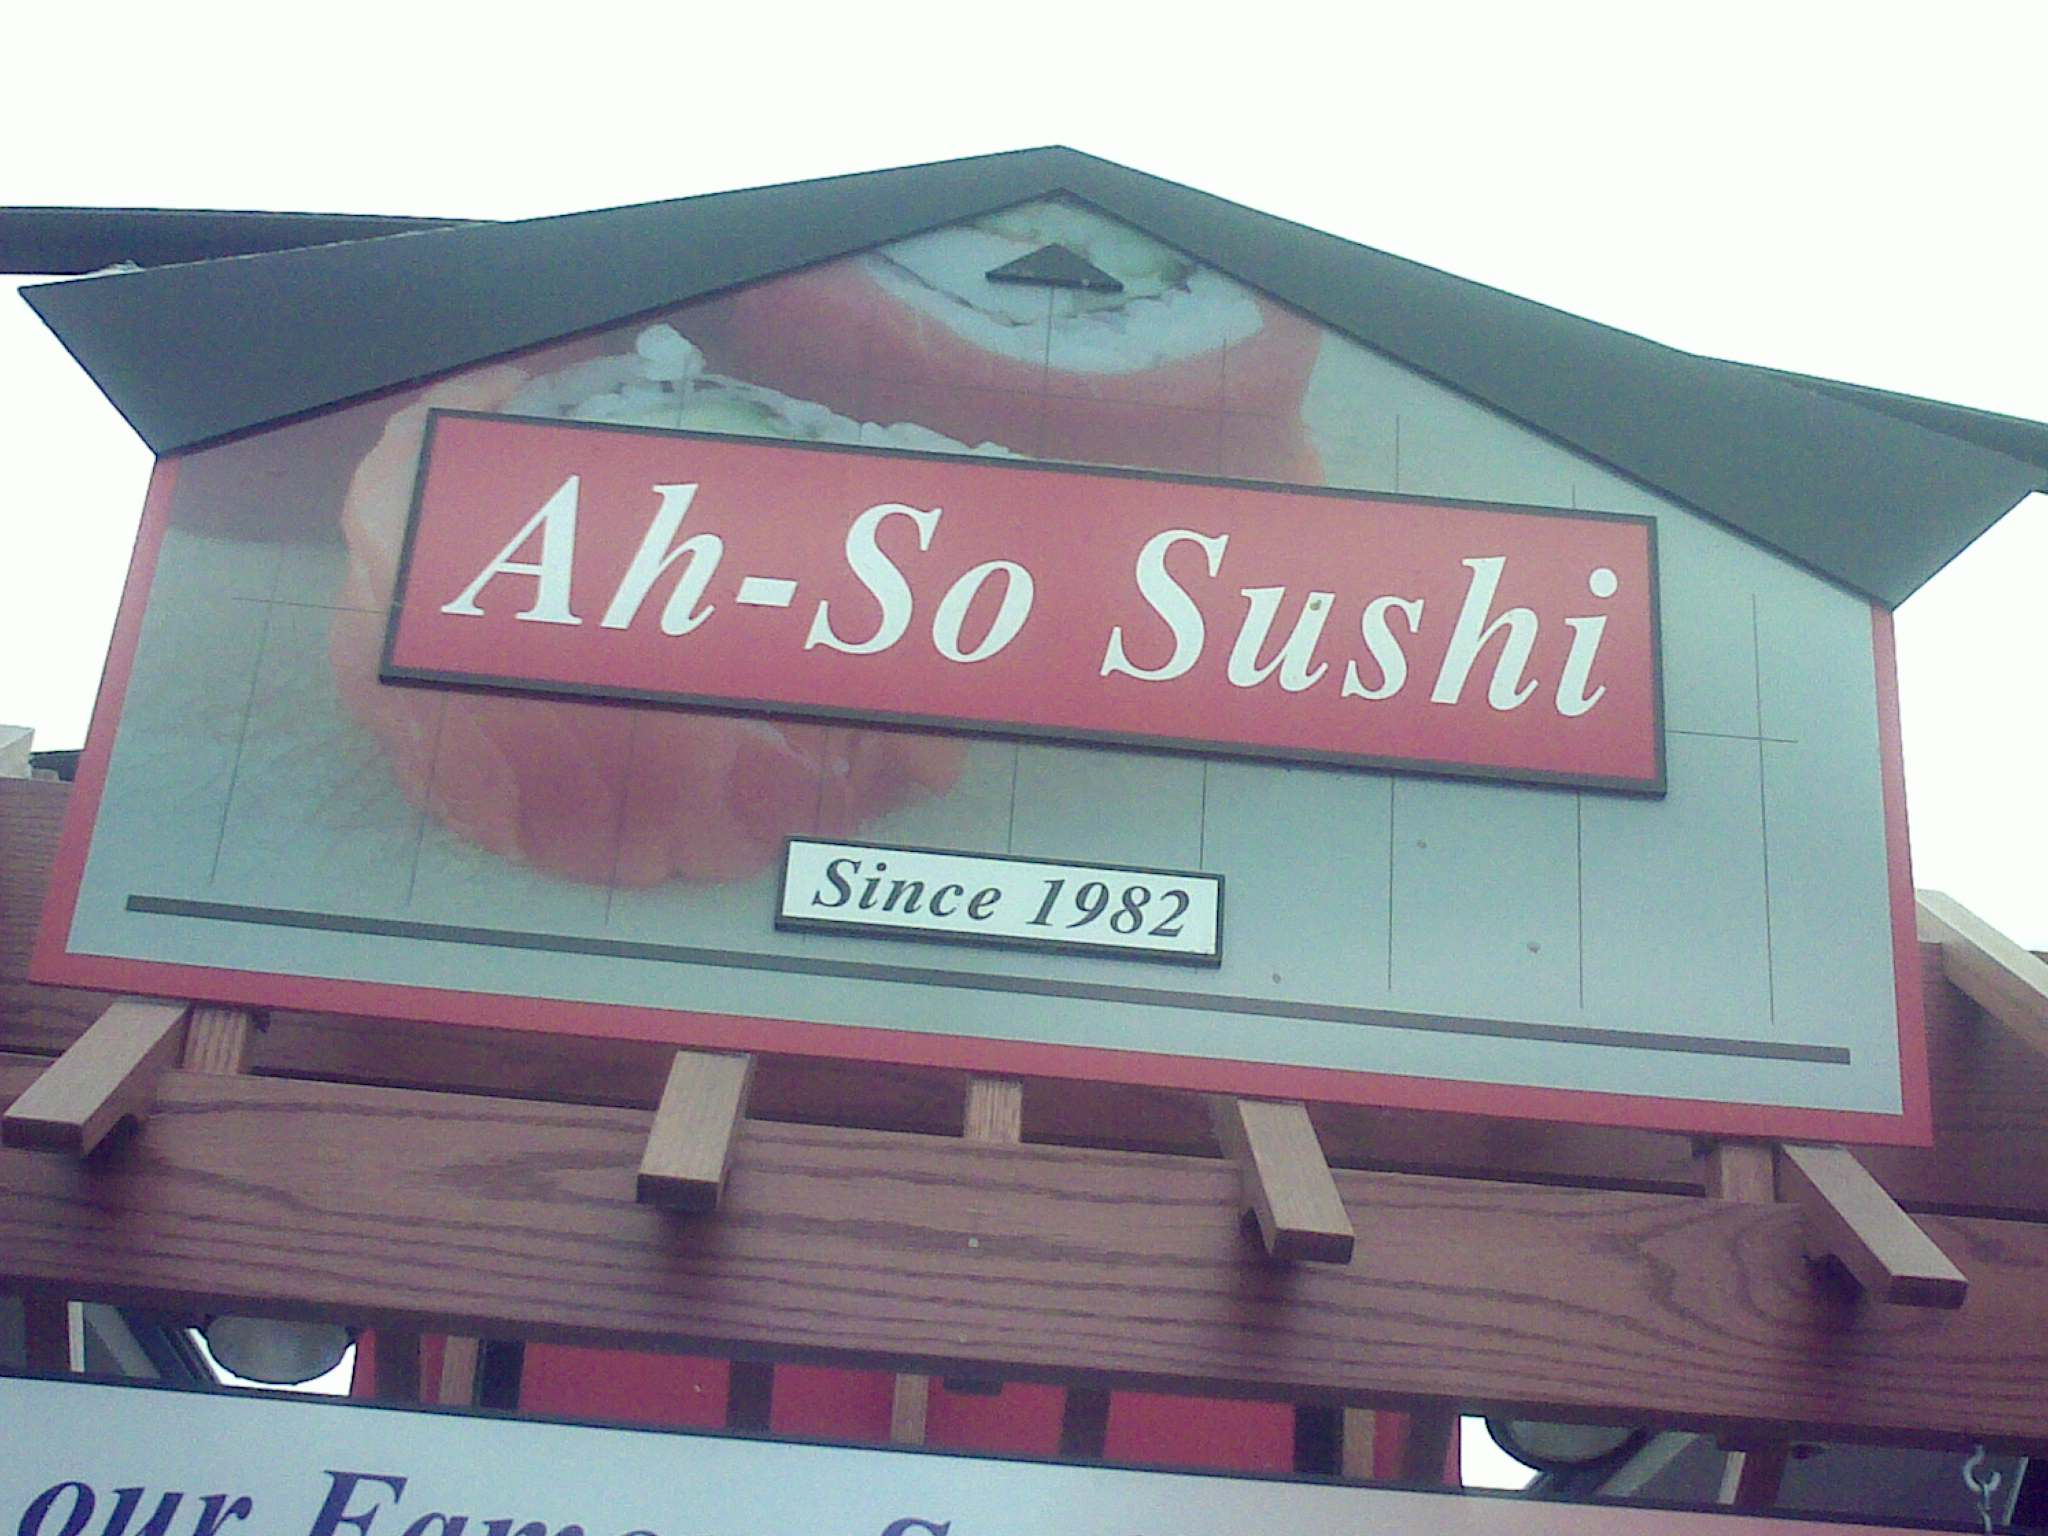 image from Sushi places I haven't eaten at.